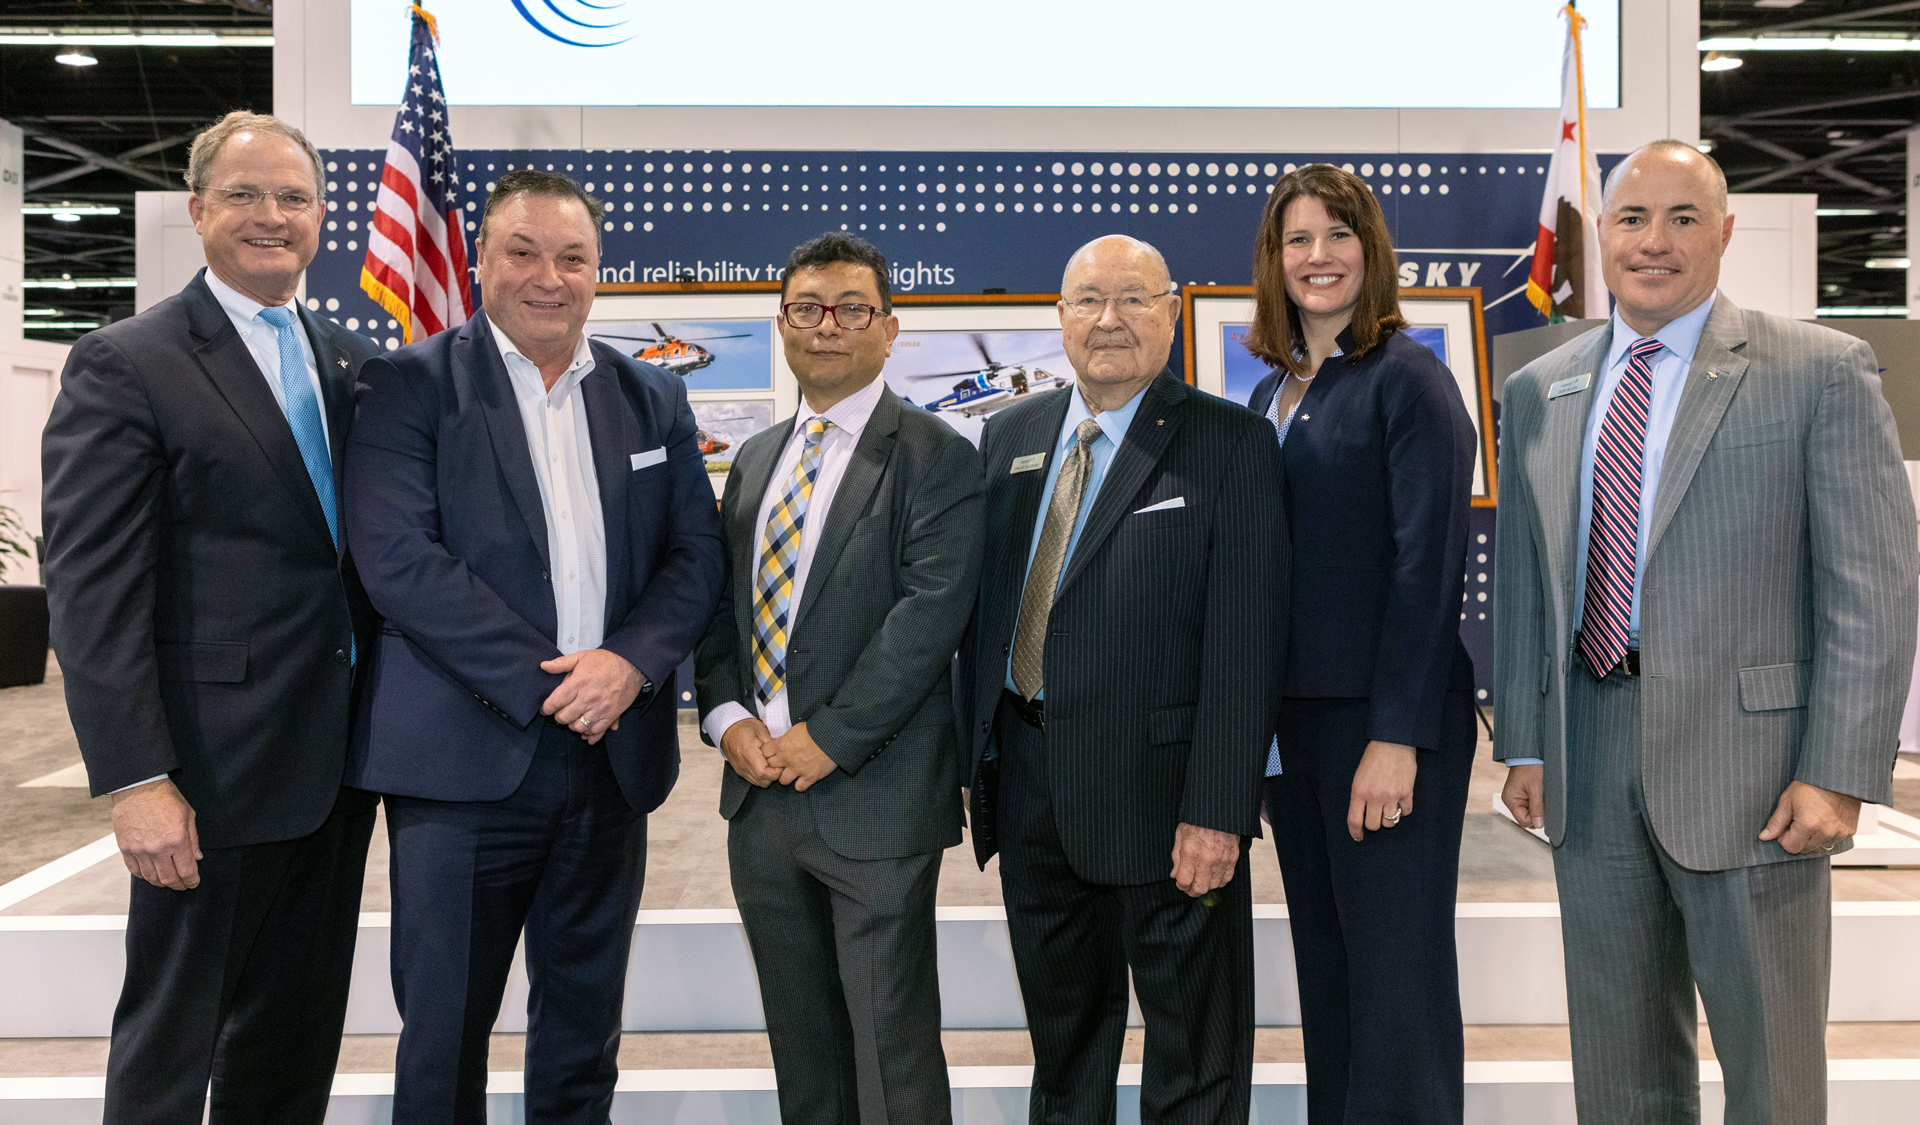 (L to R) Senior executives Don Miller, Bristow, Hank Williams, Cougar Helicopters and Miguel Carrasco, CHC, were recognized by Sergei Sikorsky, Audrey Brady, Sikorsky VP, Commercial Systems and Services and John Rudy, Sikorsky Director, Oil & Gas Services